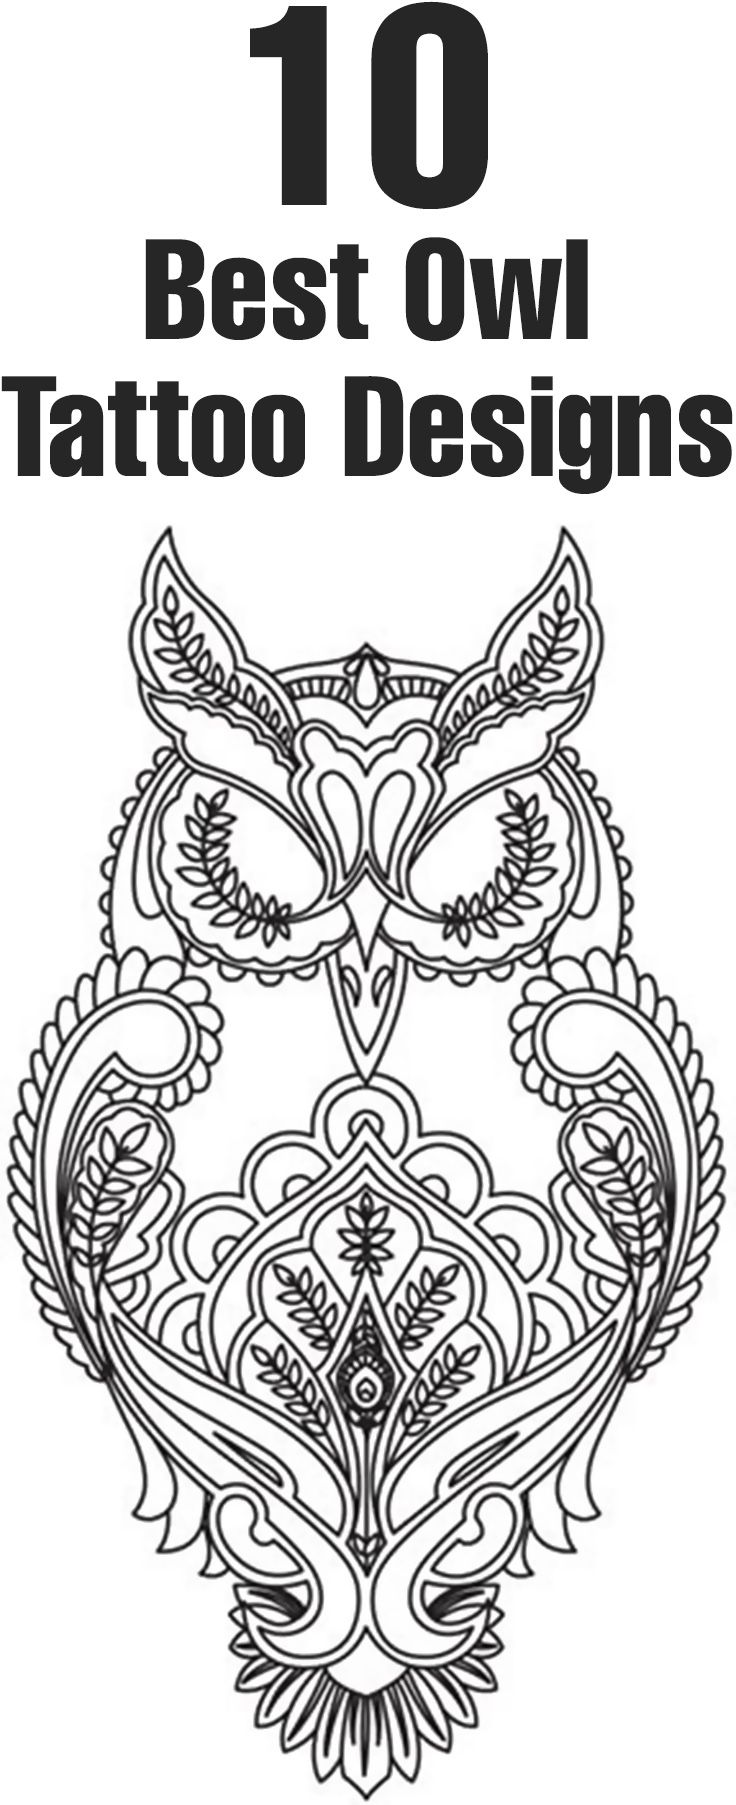 Best Owl Tattoo Designs Our Top 10 Owl Tattoo Design Owl Embroidery Owl Tattoo